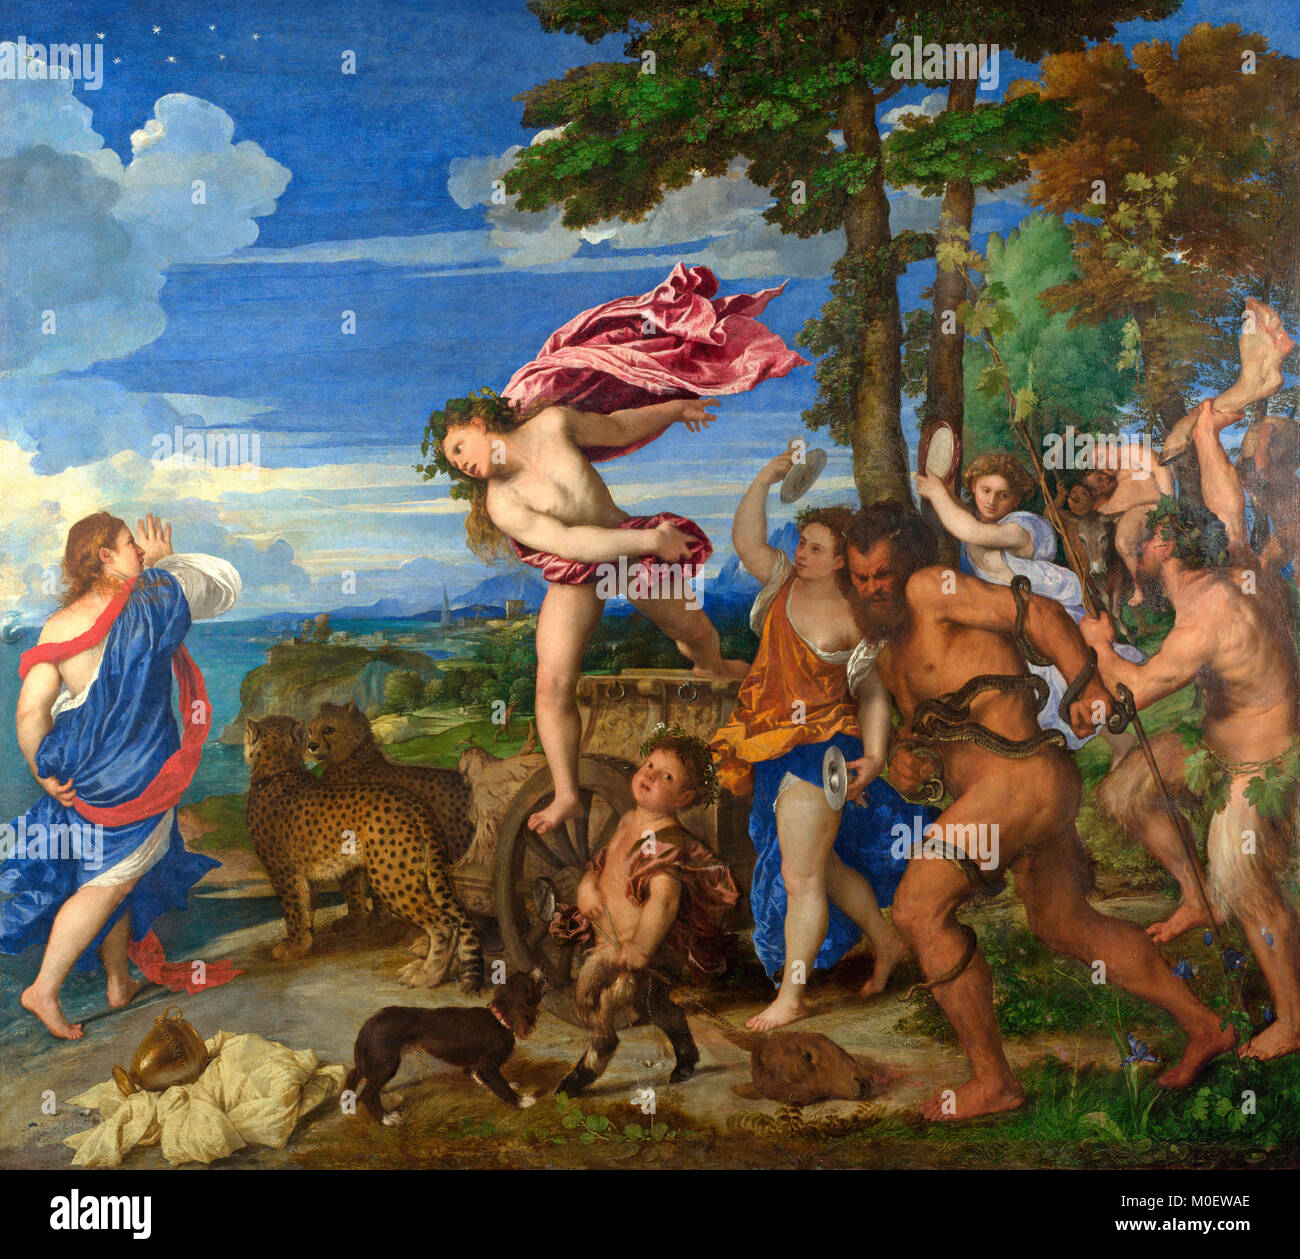 Bacchus and Ariadne - Titian - circa 1490  Theseus, whose ship is shown in the distance, has just left Ariadne on - Stock Image